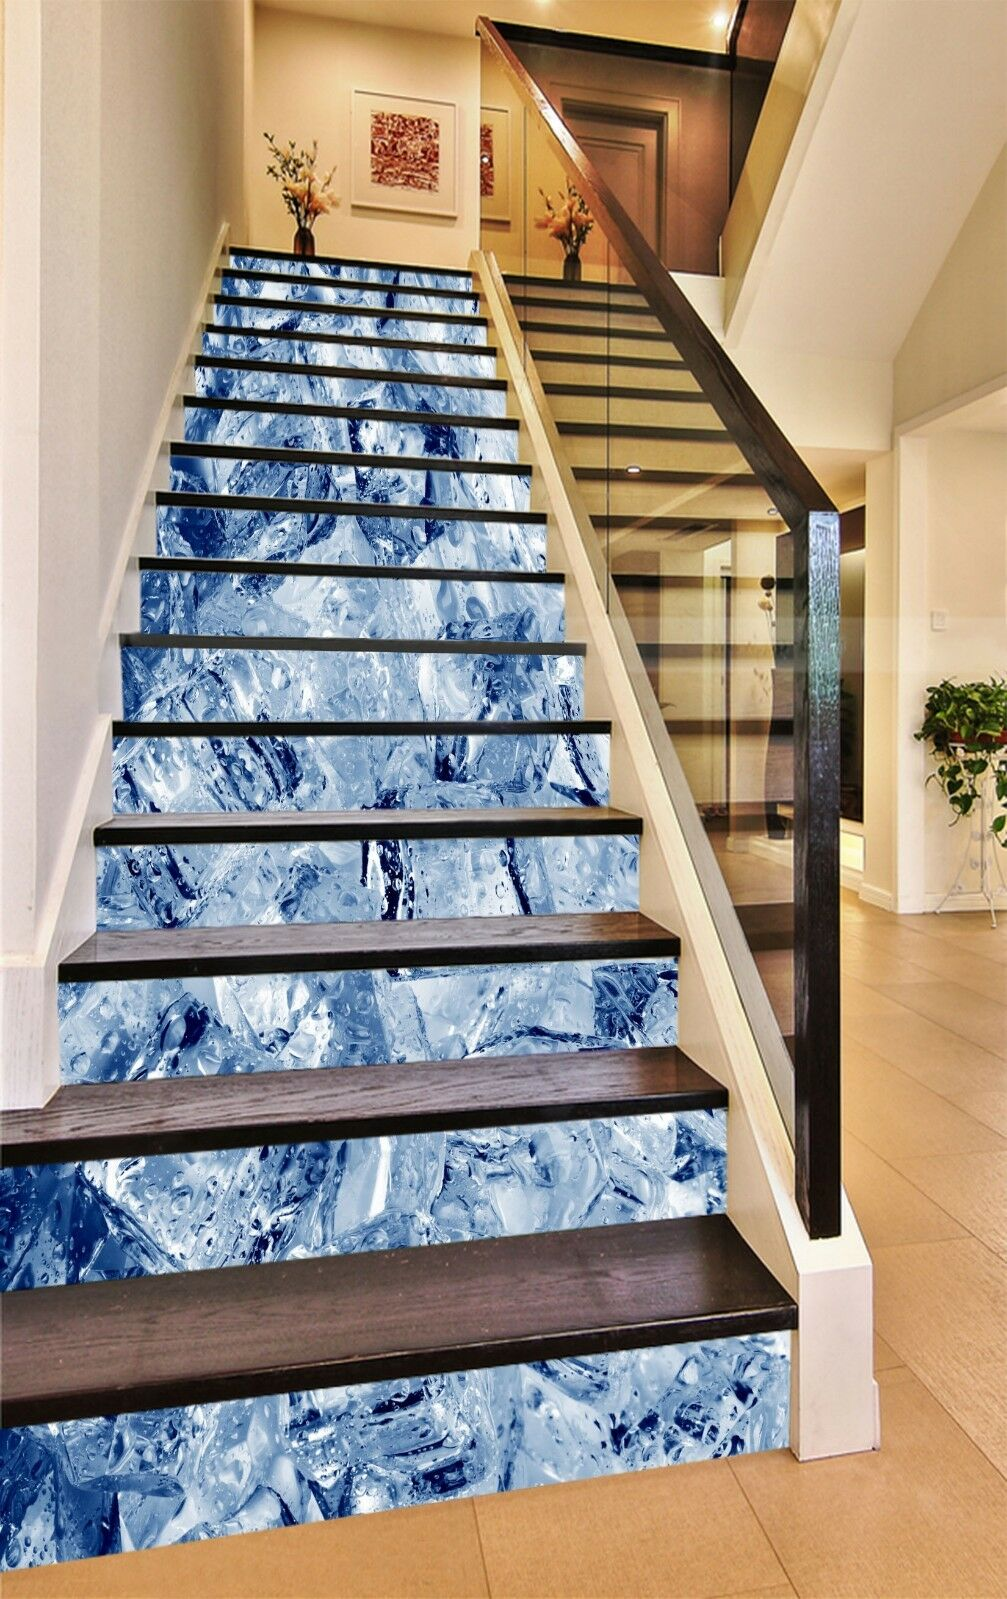 3D Ice Cubes Adorn Stair Risers Decoration Photo Mural Vinyl Decal Wallpaper US